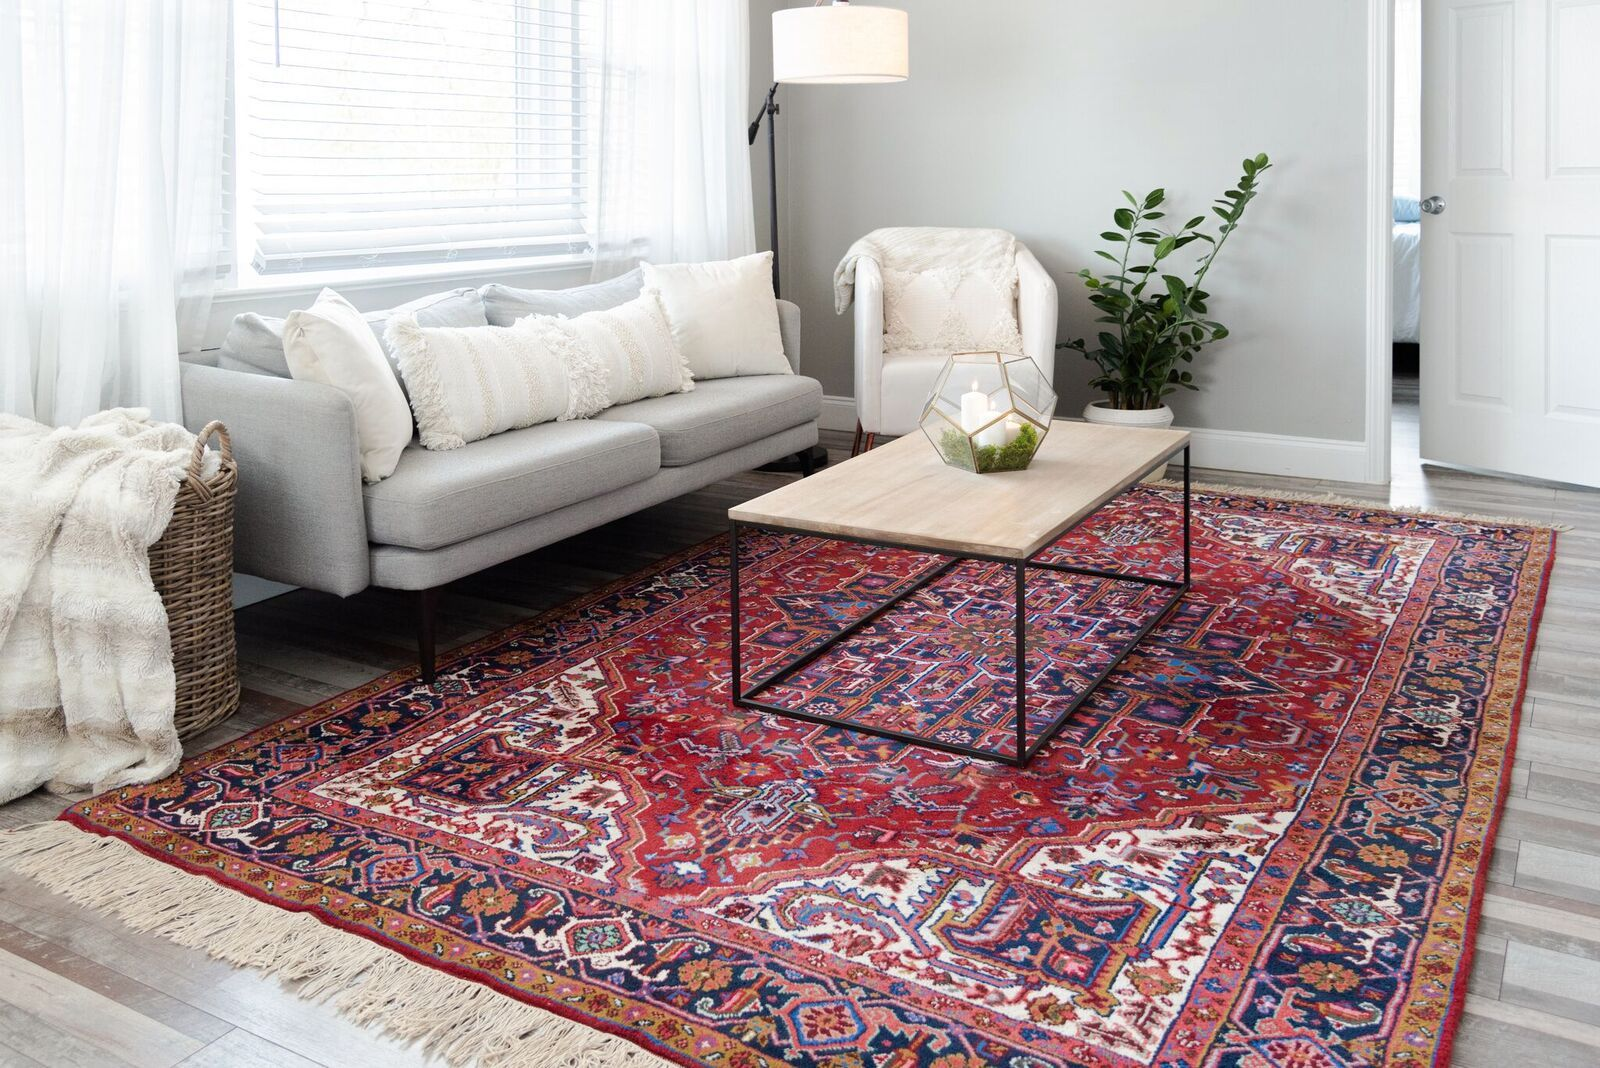 Living Room In 2020 Persian Rug Living Room Red Persian Rug Living Room Rugs On Carpet #red #persian #rug #living #room